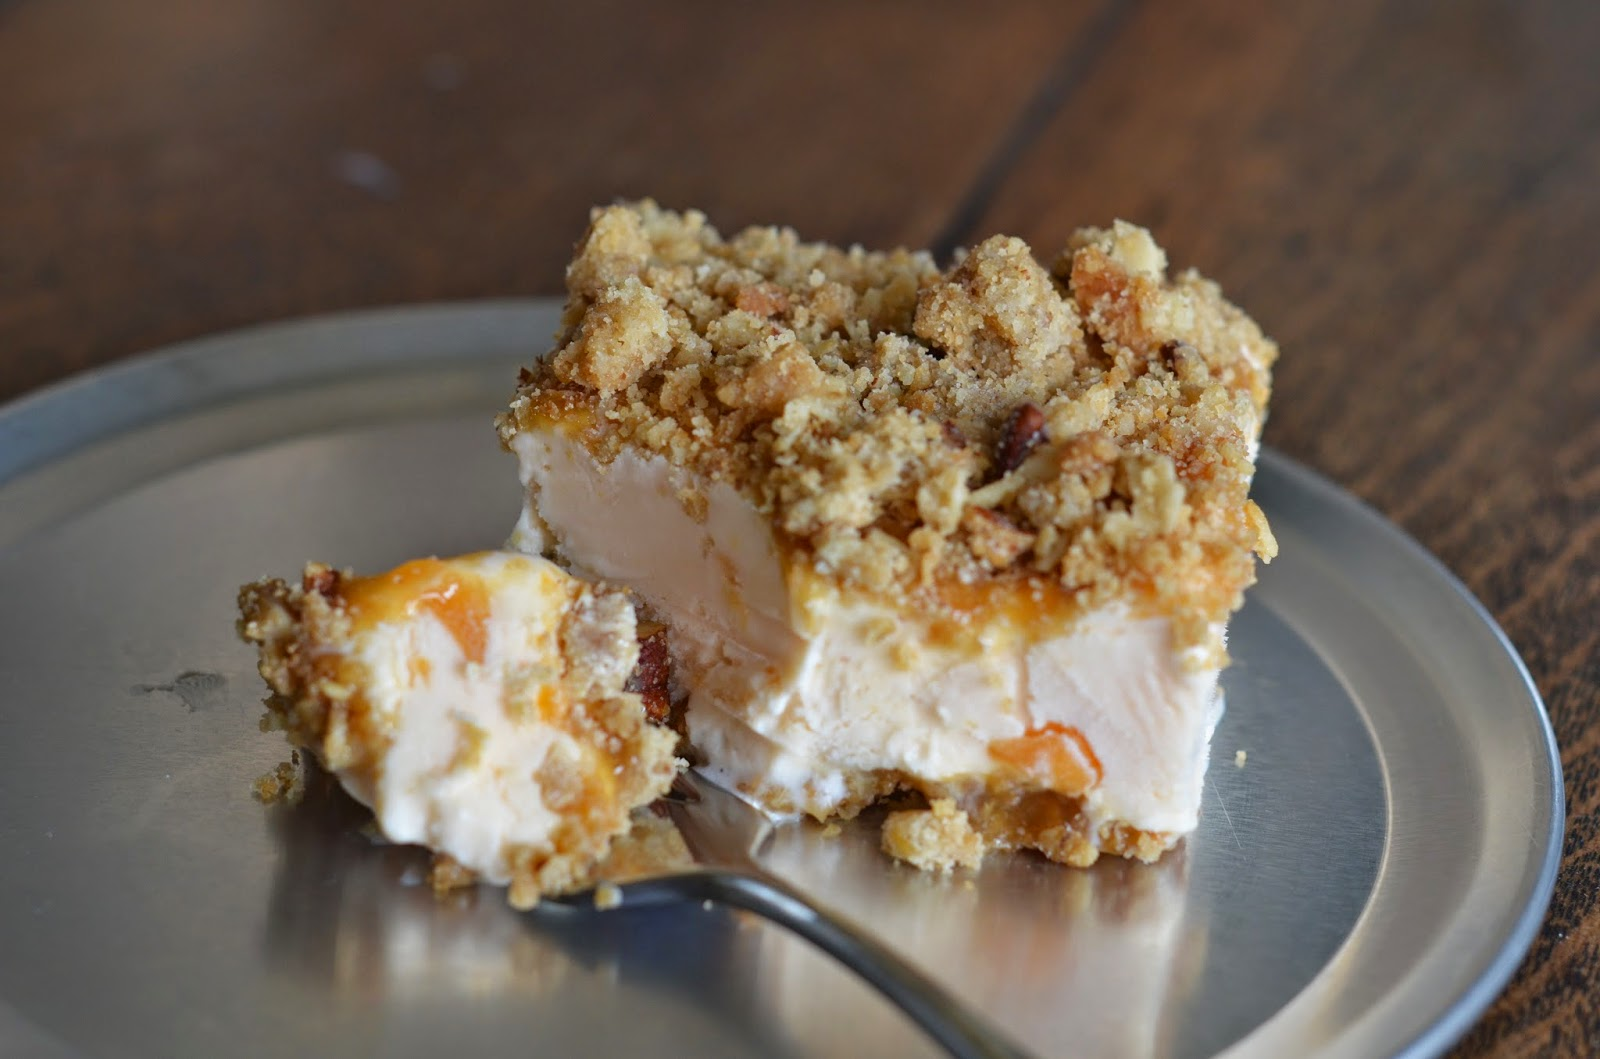 Peach Caramel Crunch Ice Cream Dessert